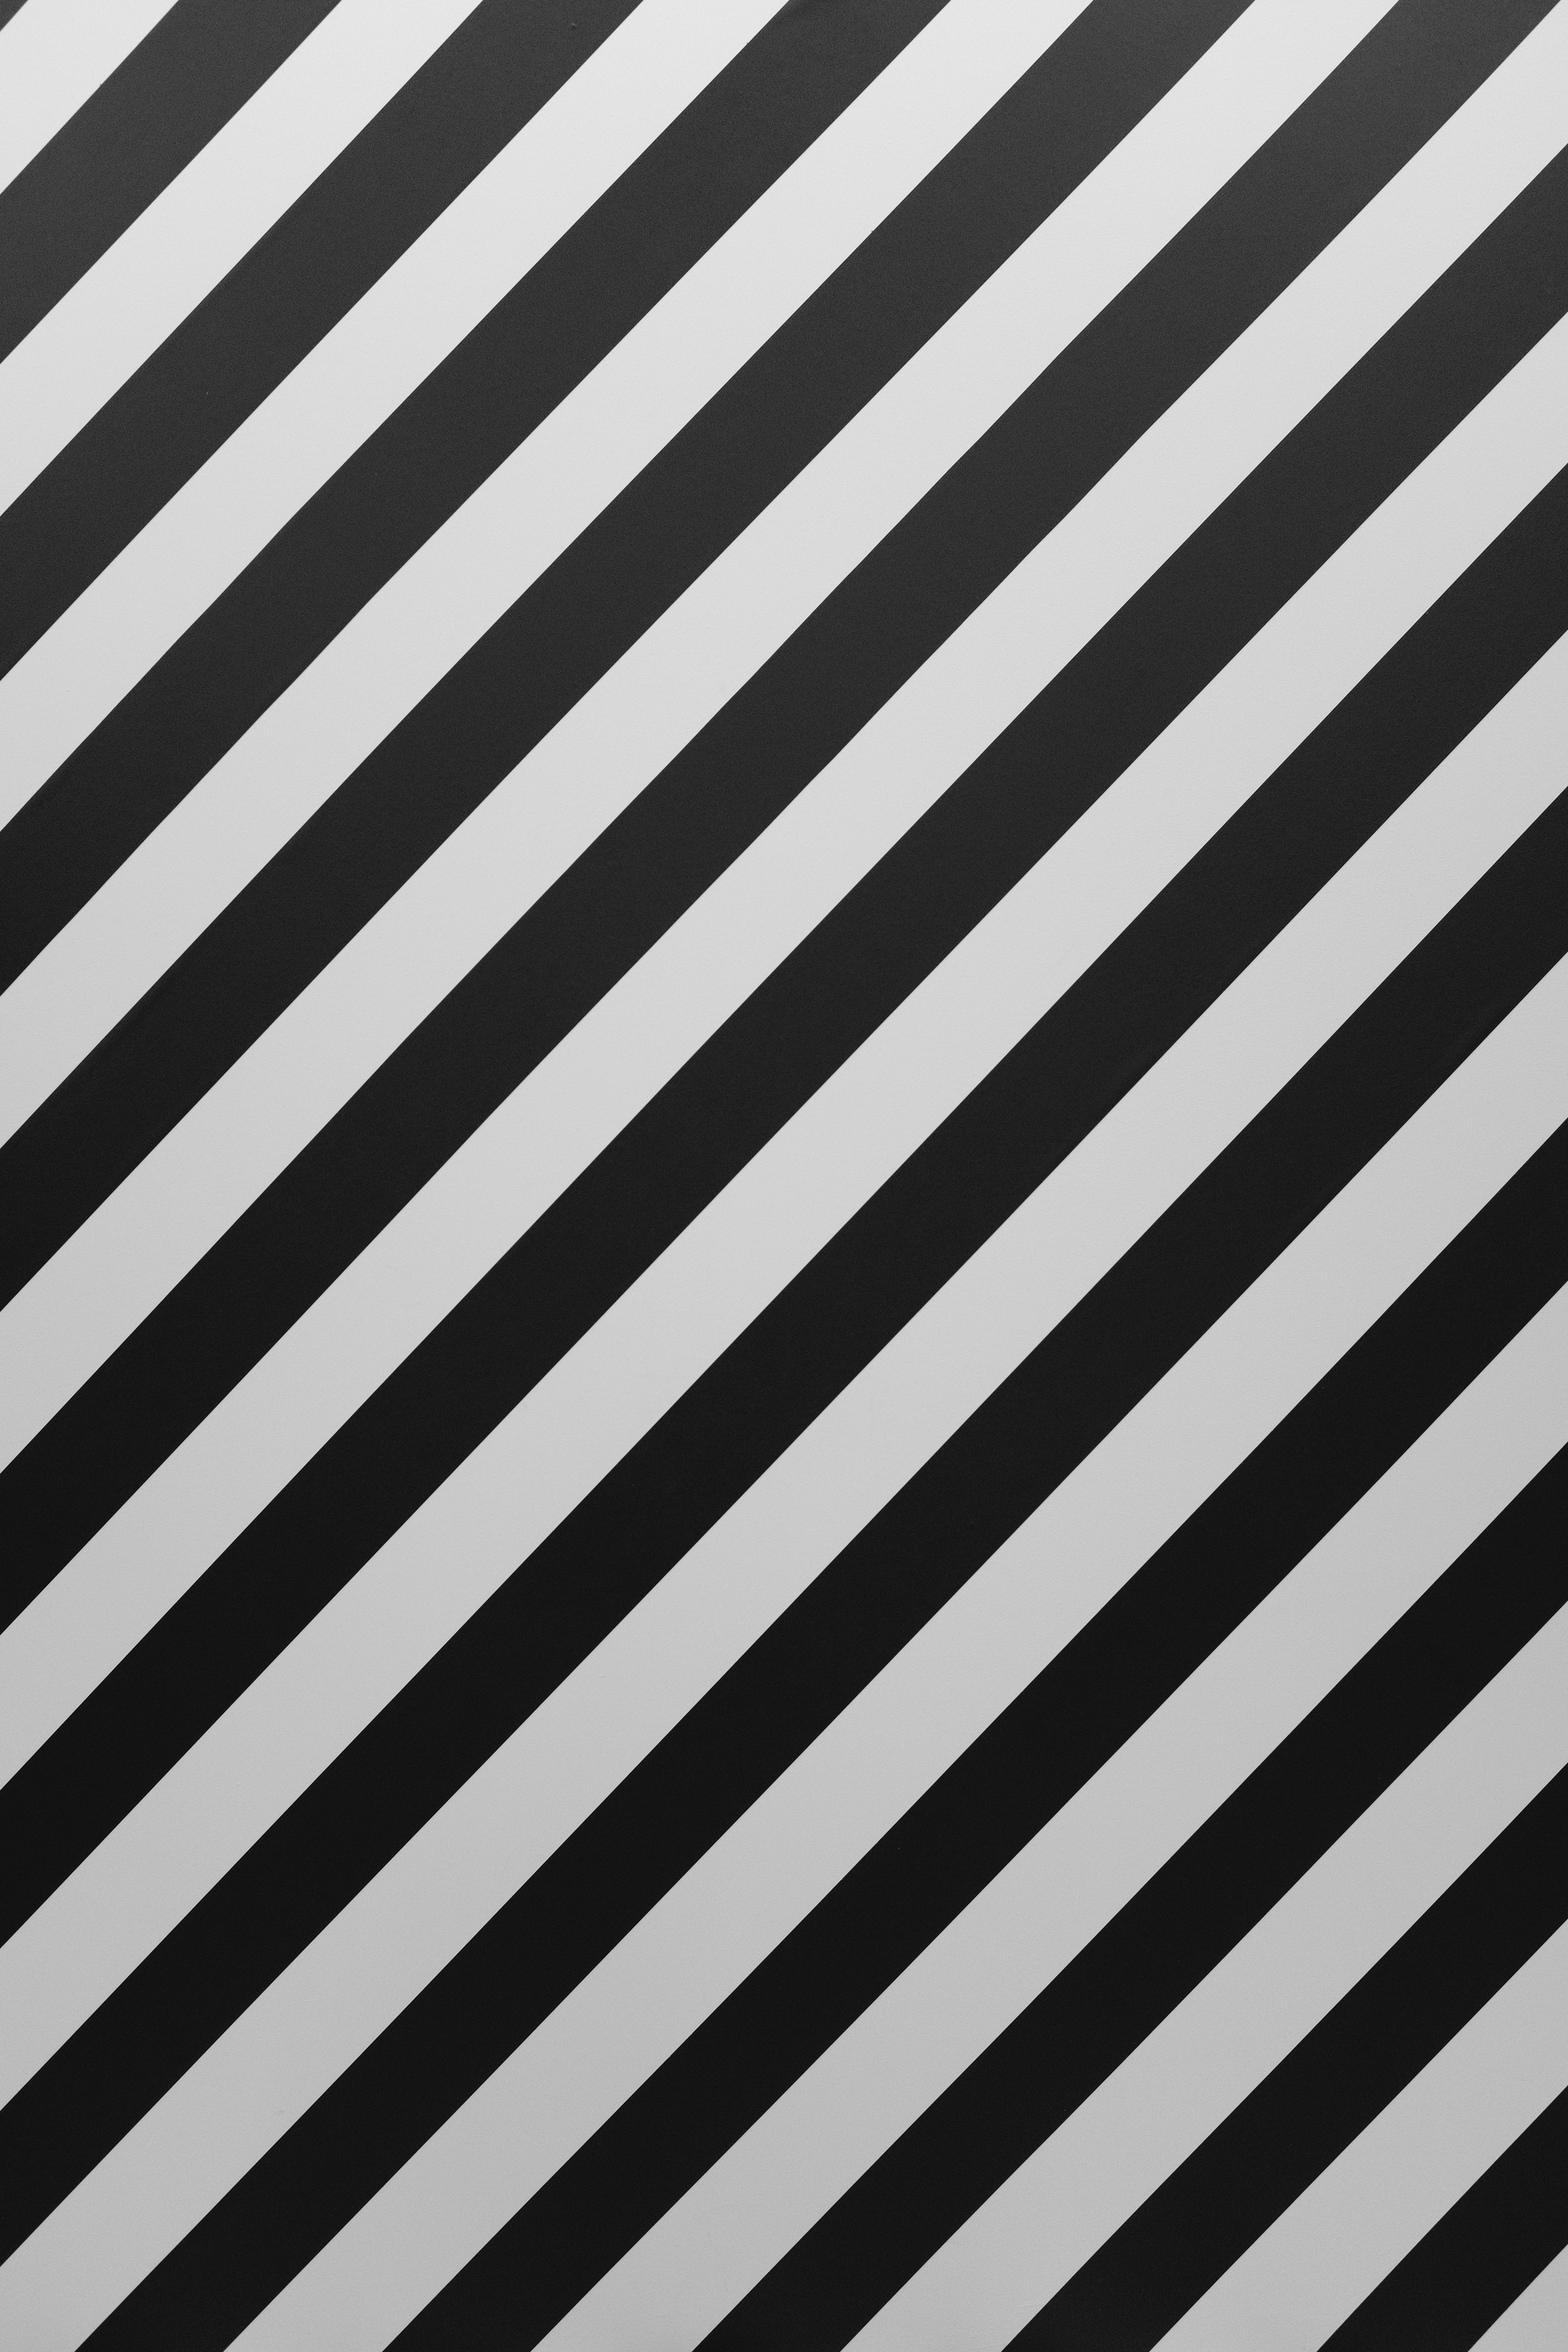 125204 Screensavers and Wallpapers Stripes for phone. Download Stripes, Texture, Lines, Textures, Bw, Chb, Streaks, Obliquely pictures for free